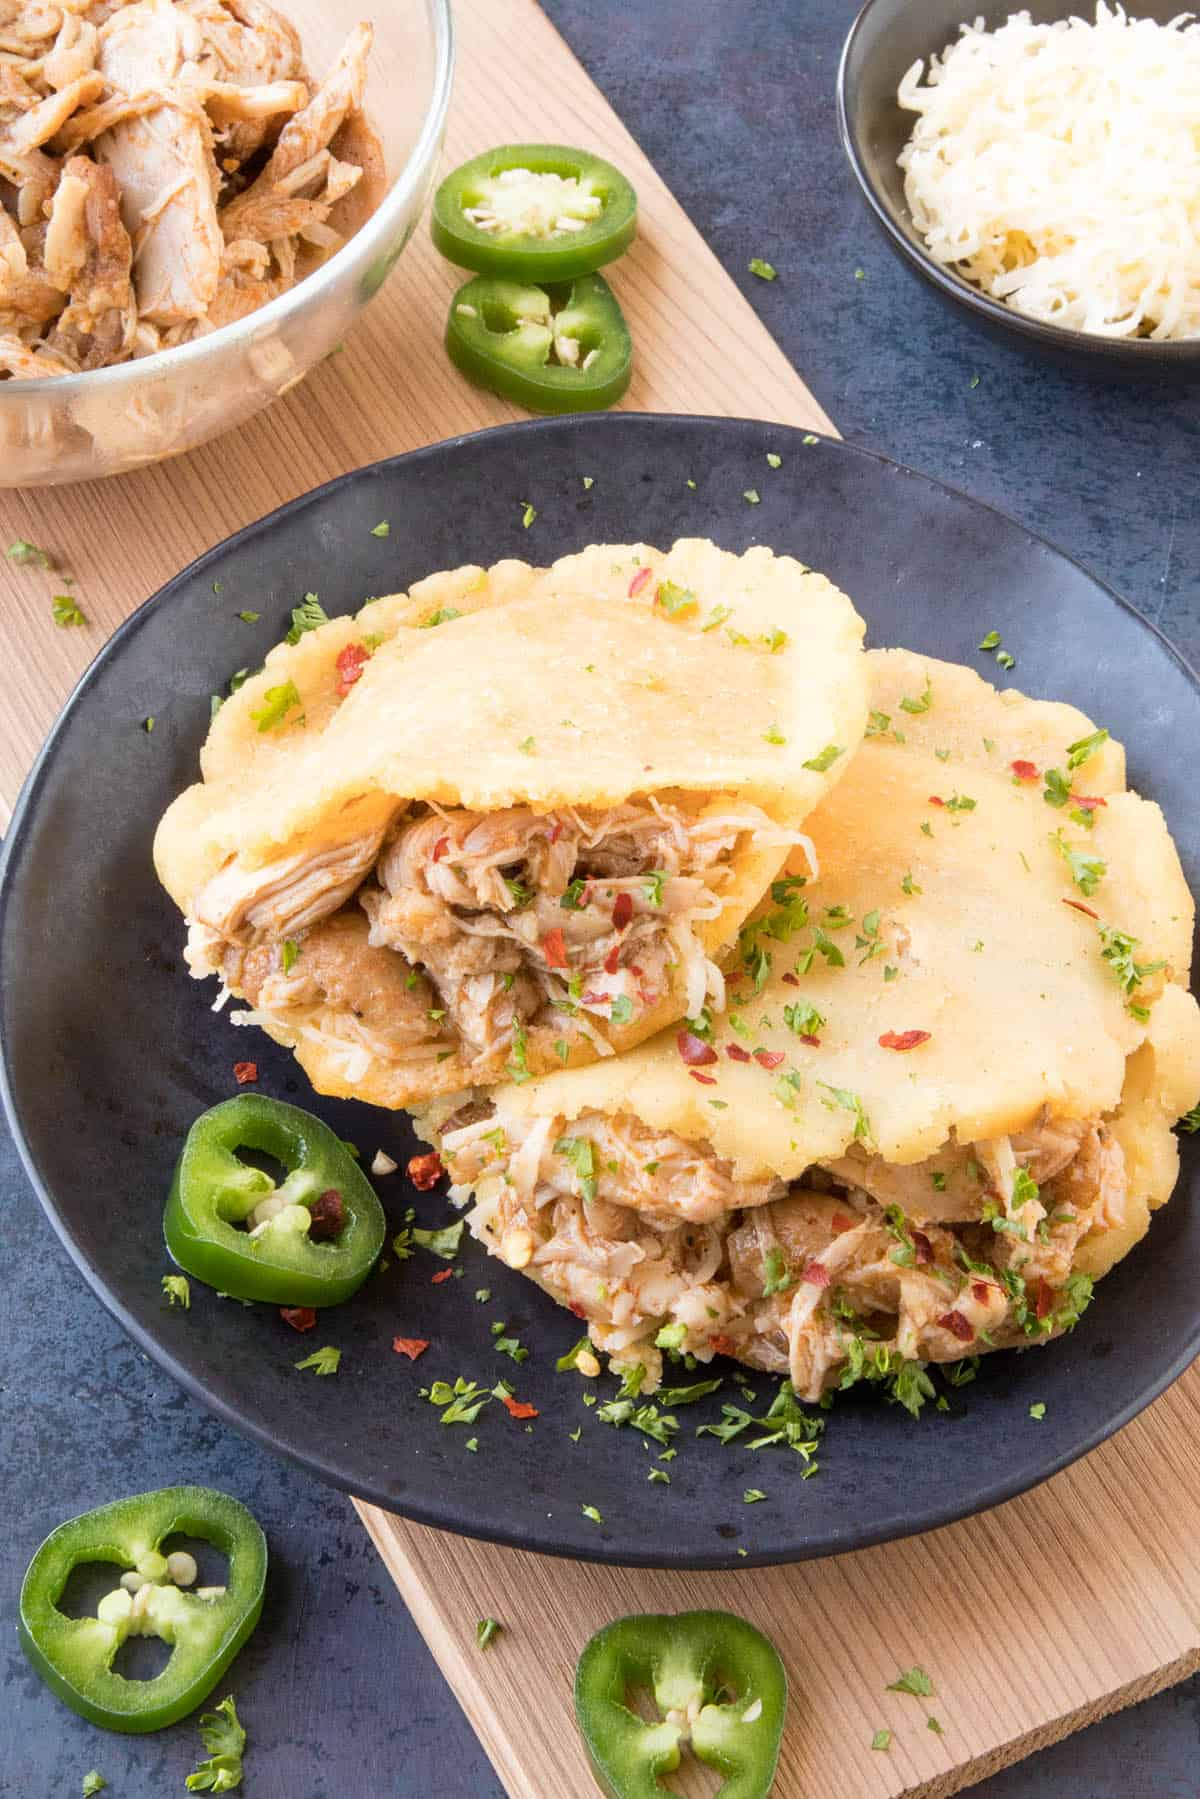 Pulled Chicken Gorditas Recipe - Stuffed with Delicious Pulled Chicken and read to eat